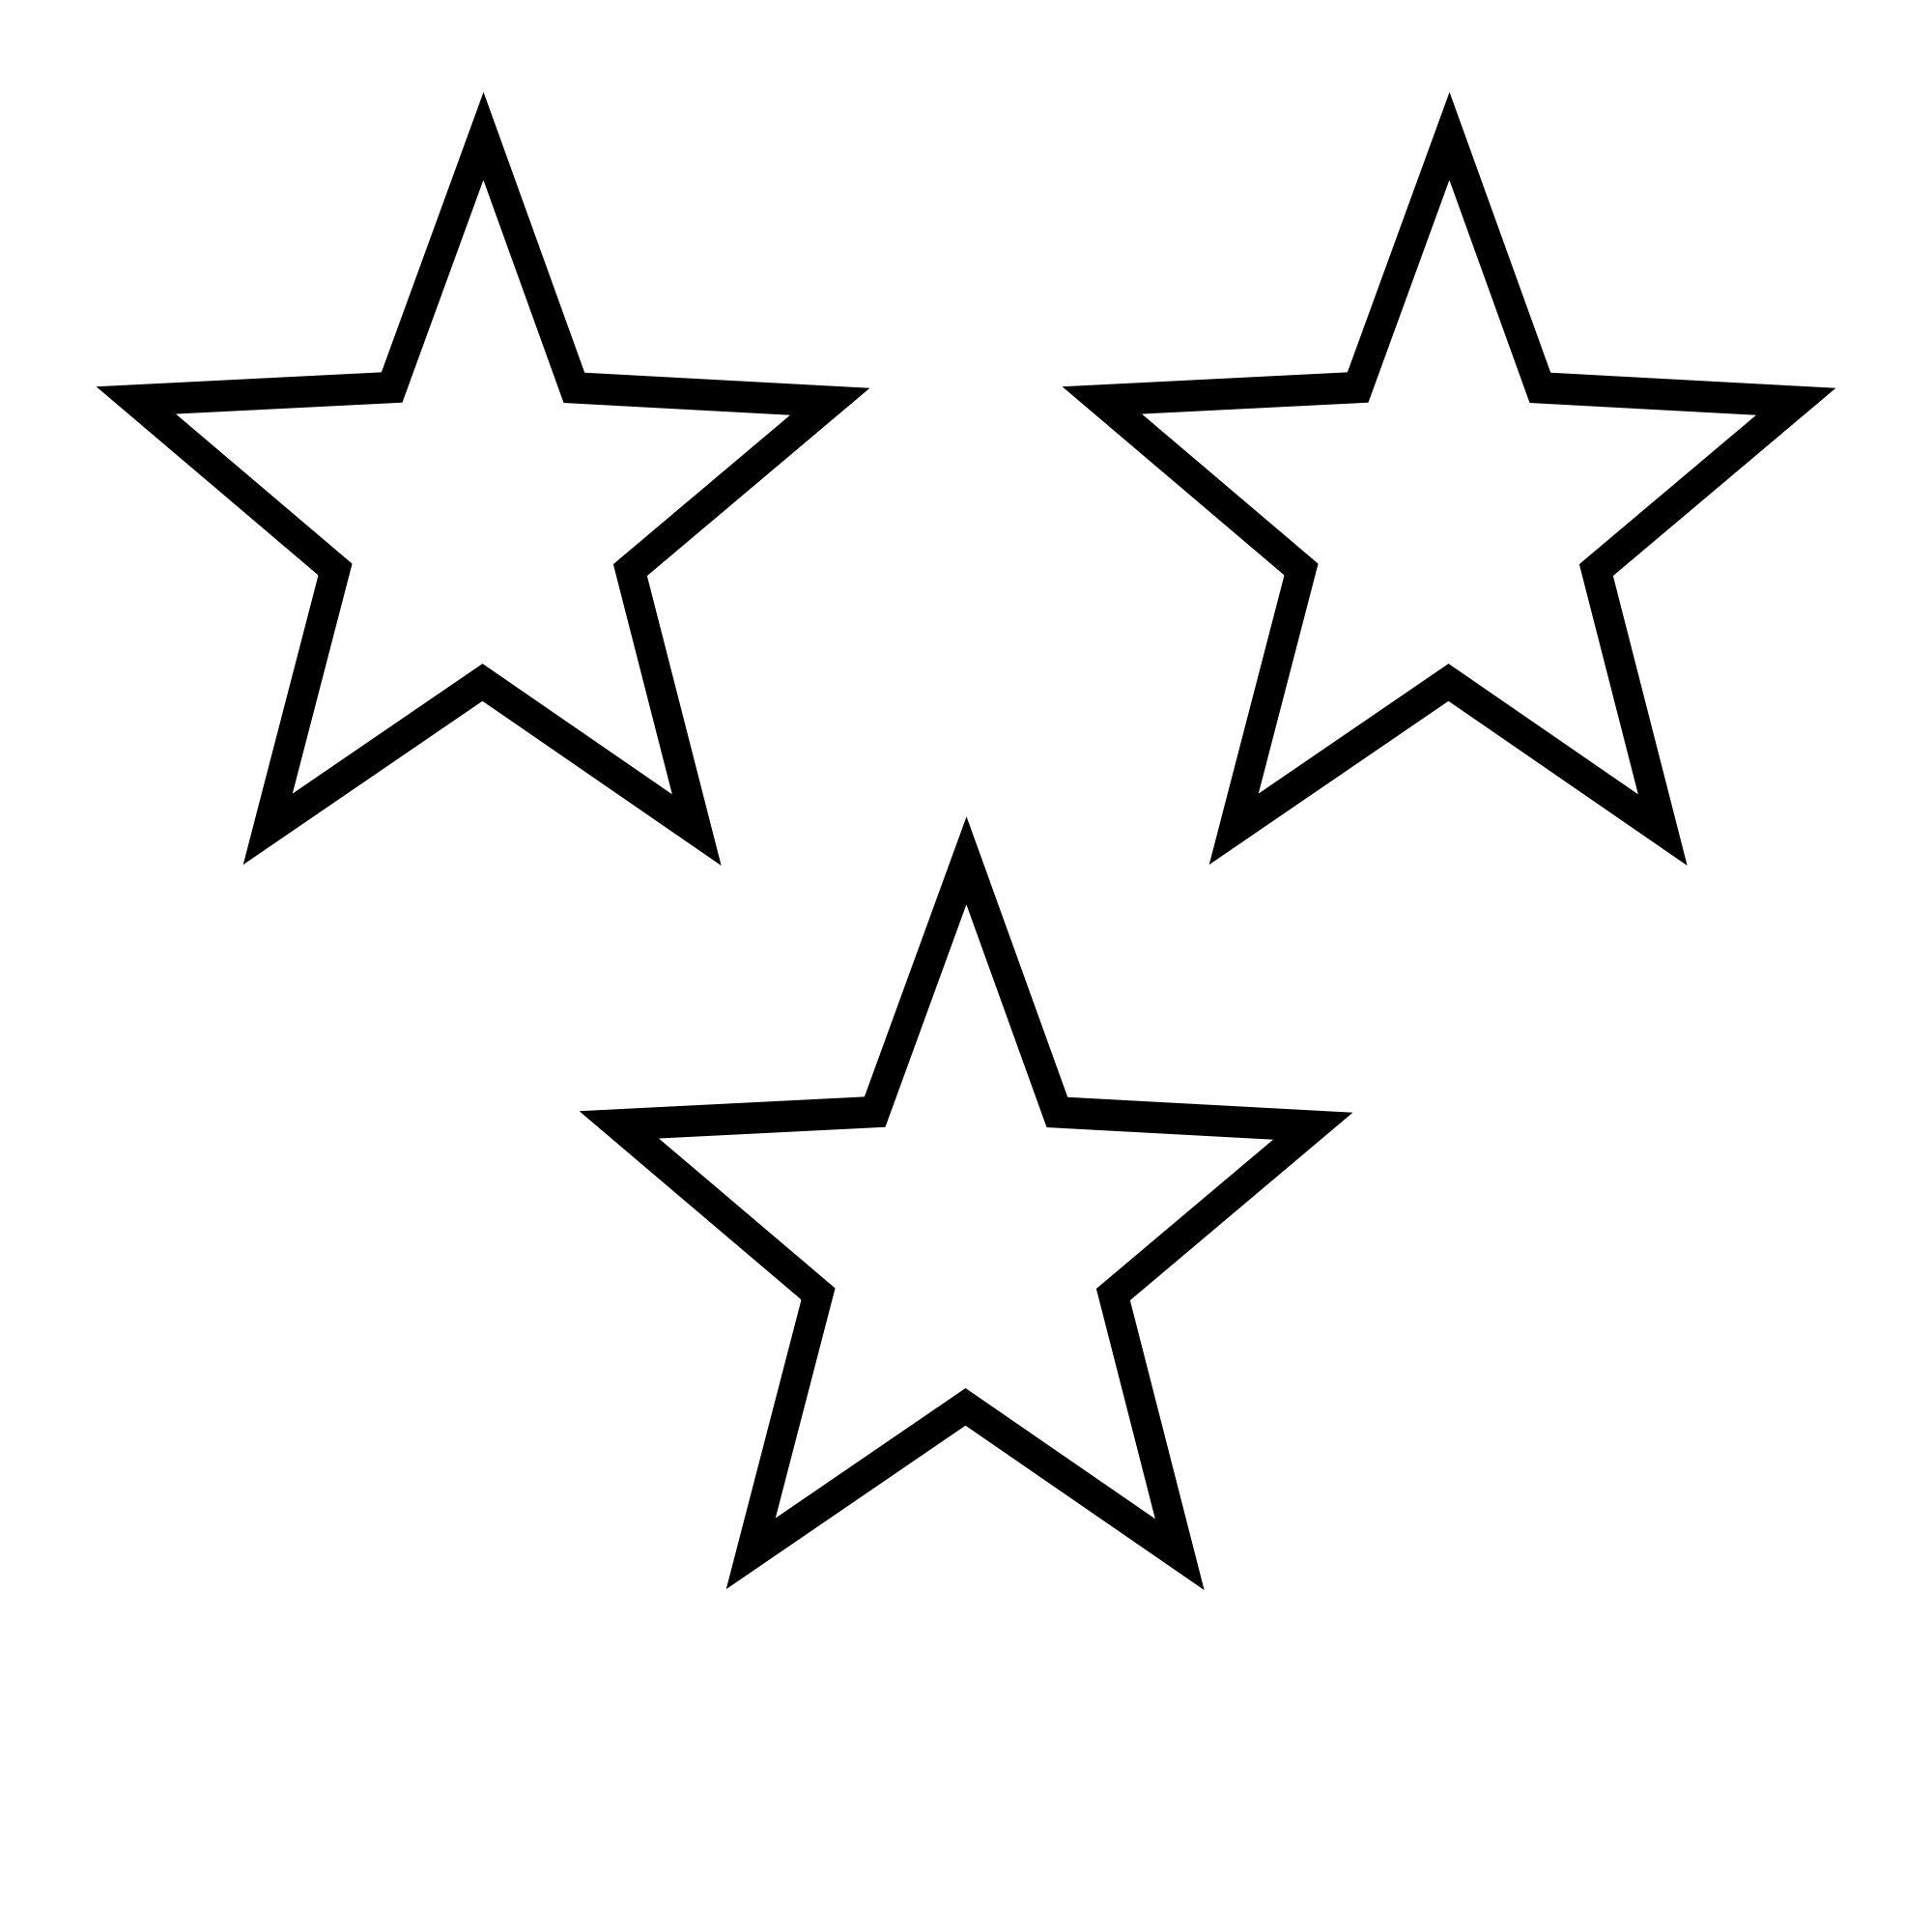 jpg library Png star transparent images. Black and white clipart stars